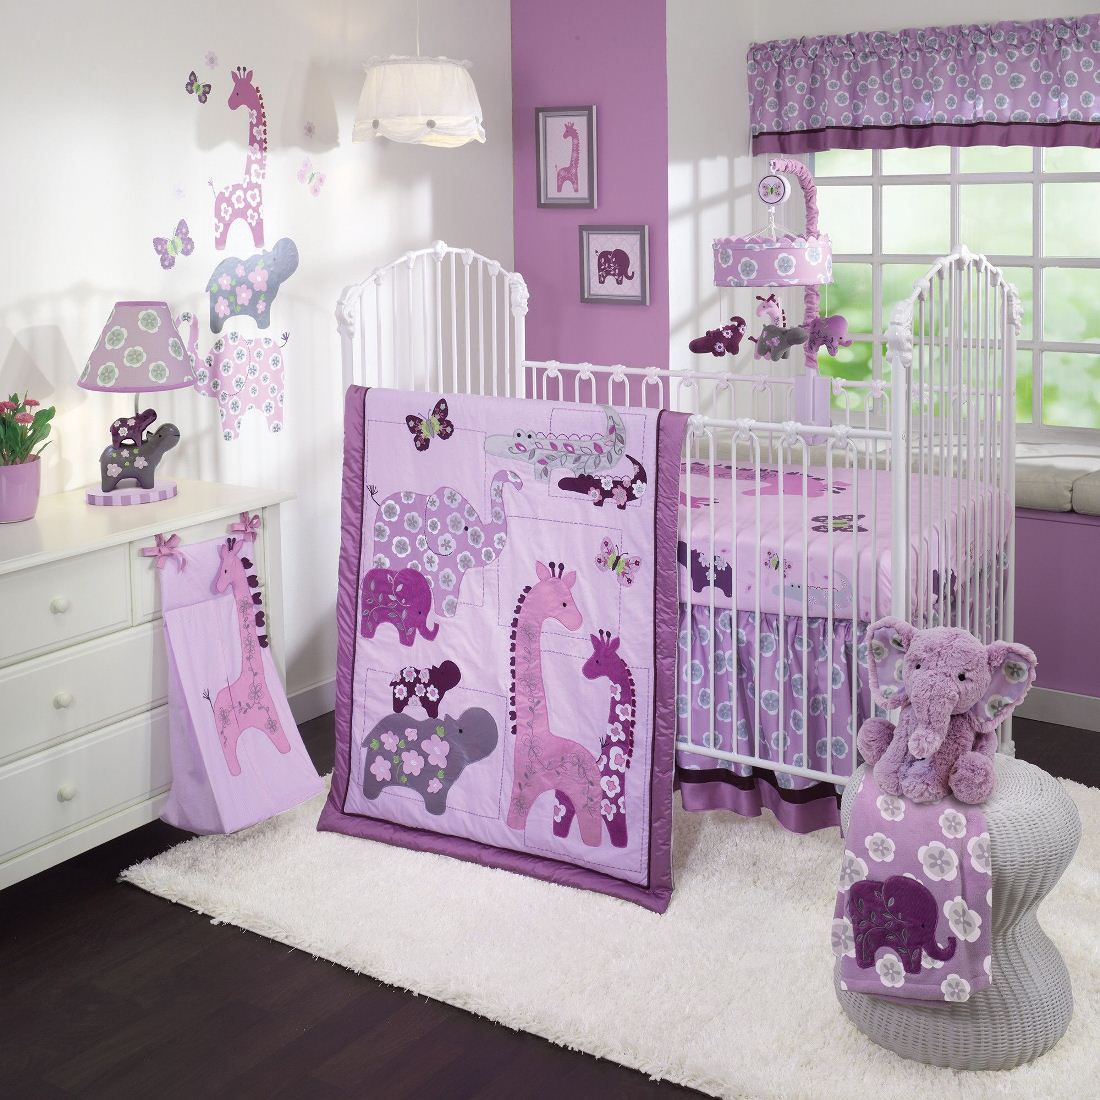 Purple baby girl nursery decorating ideas with jungle themes ...